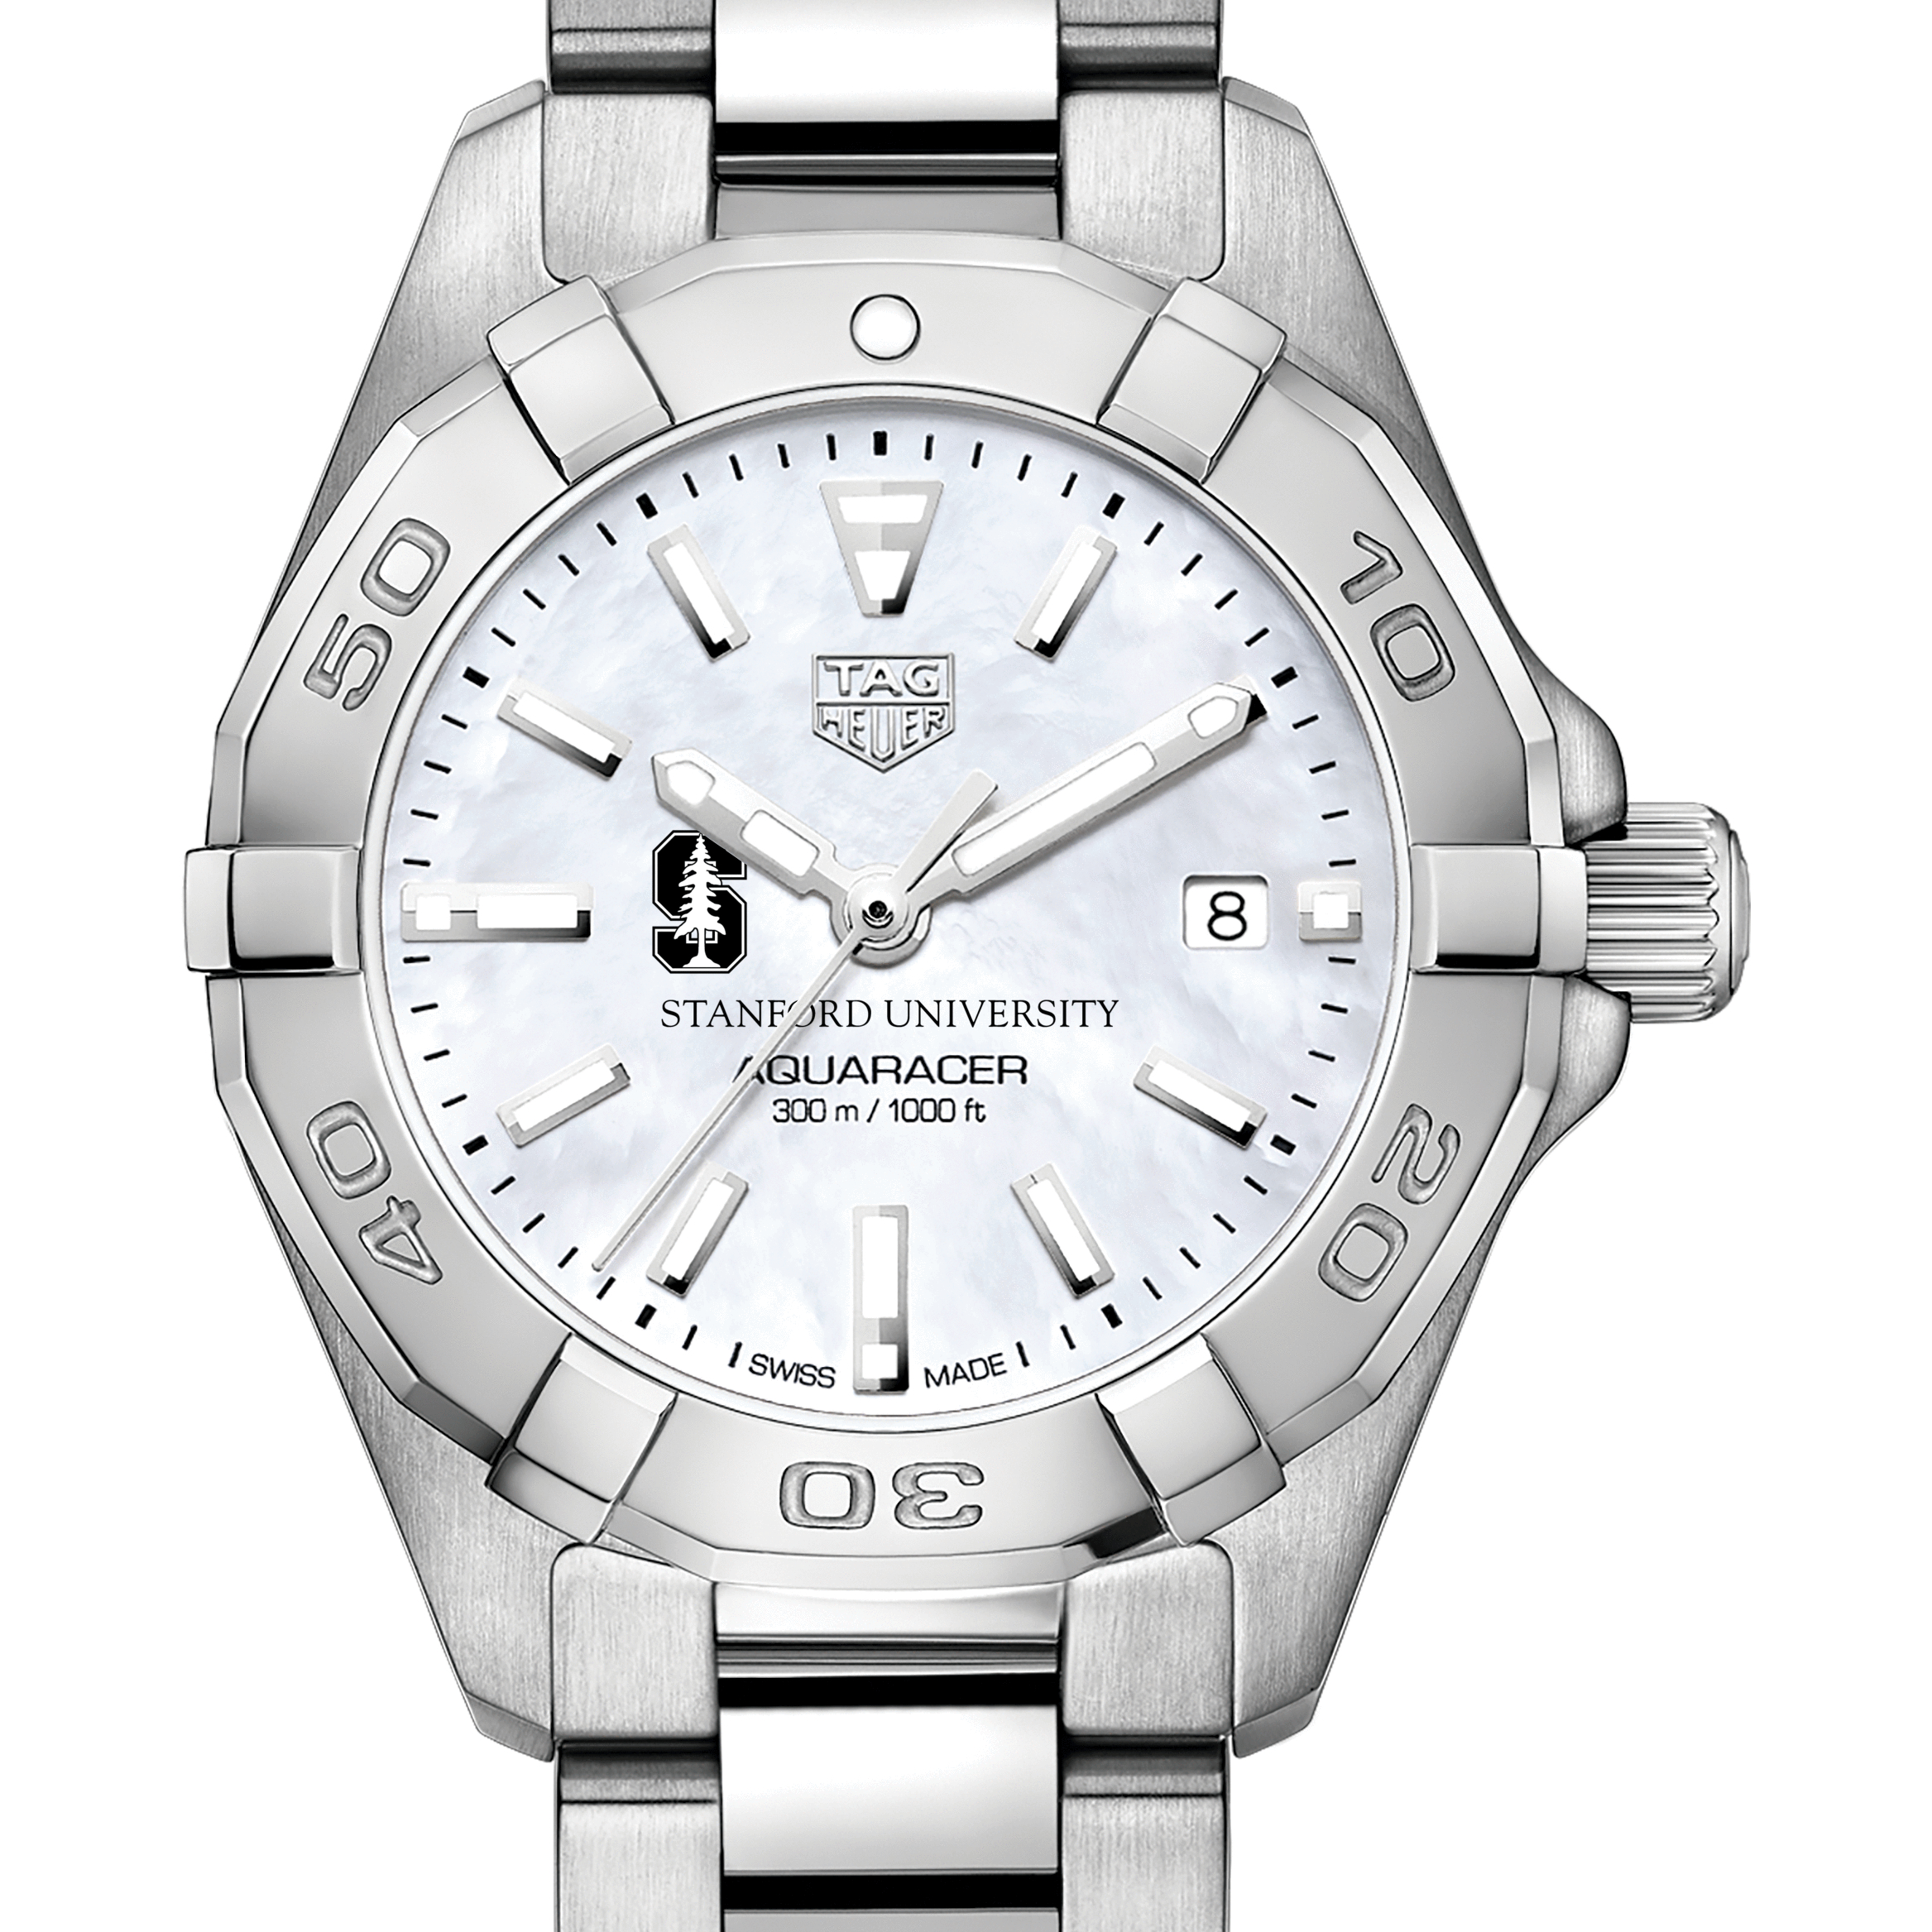 Stanford University Women's TAG Heuer Steel Aquaracer with MOP Dial